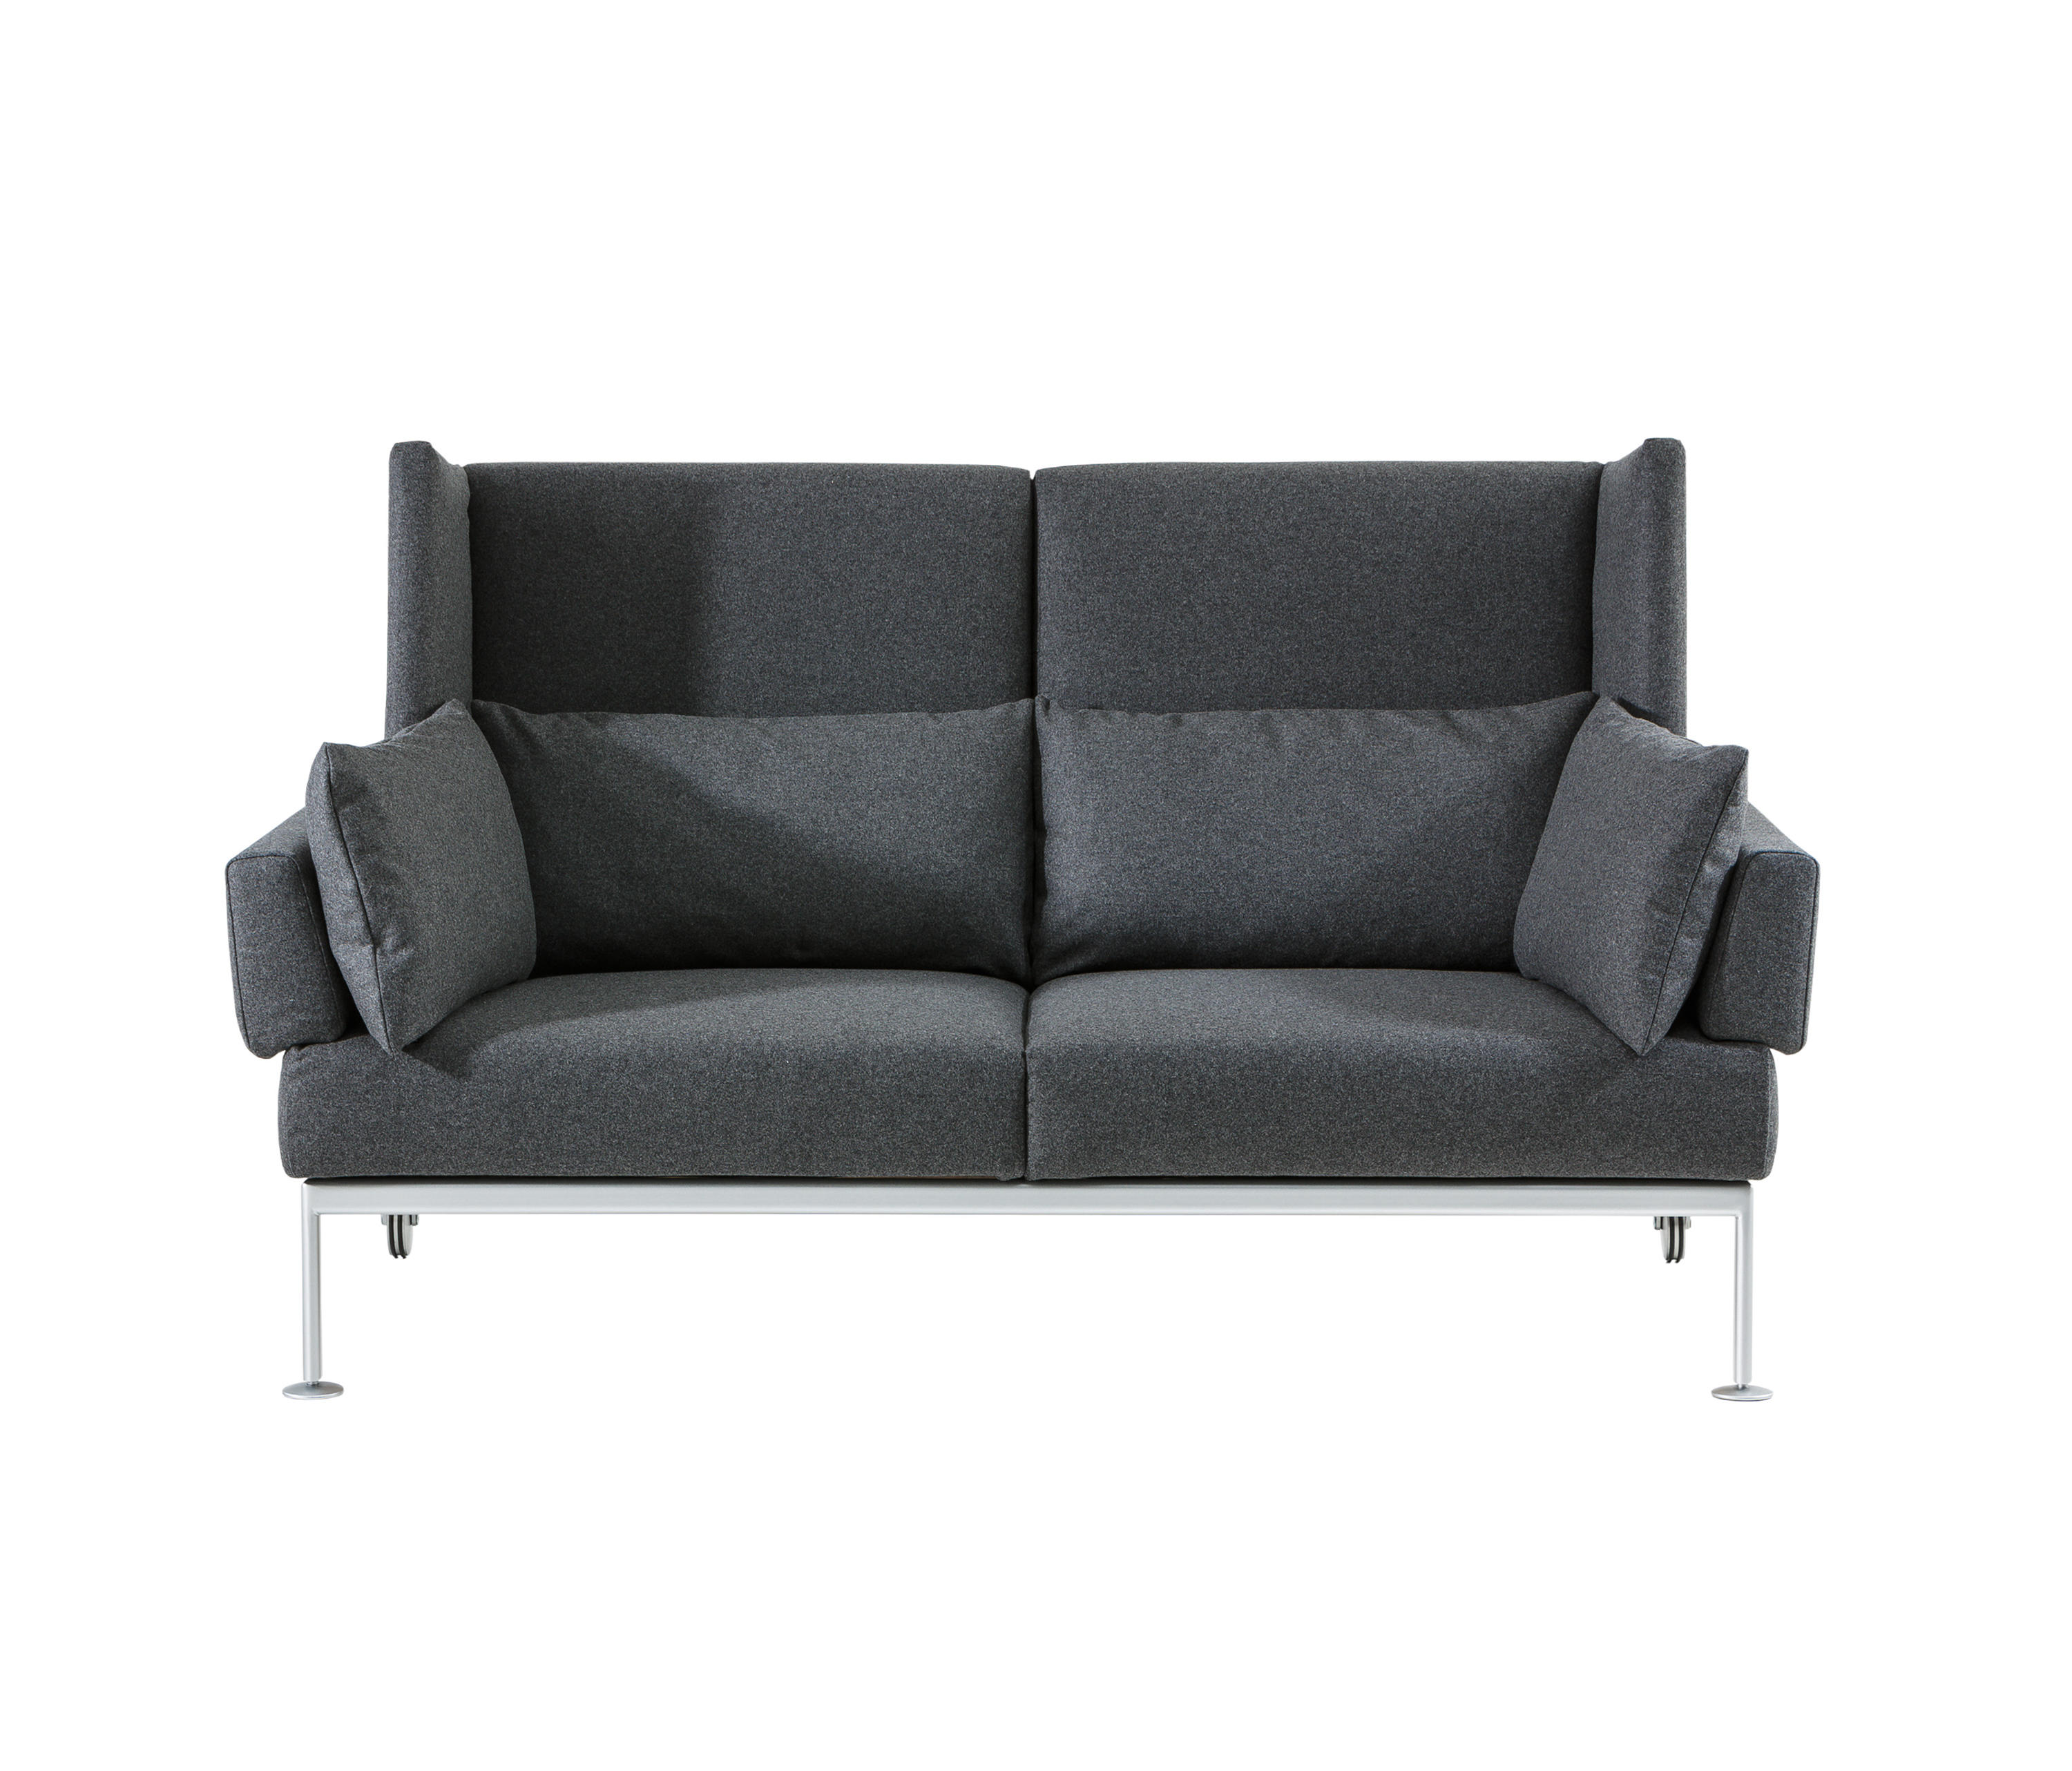 On tour sofa beds from brhl architonic on tour by brhl sofa beds parisarafo Gallery